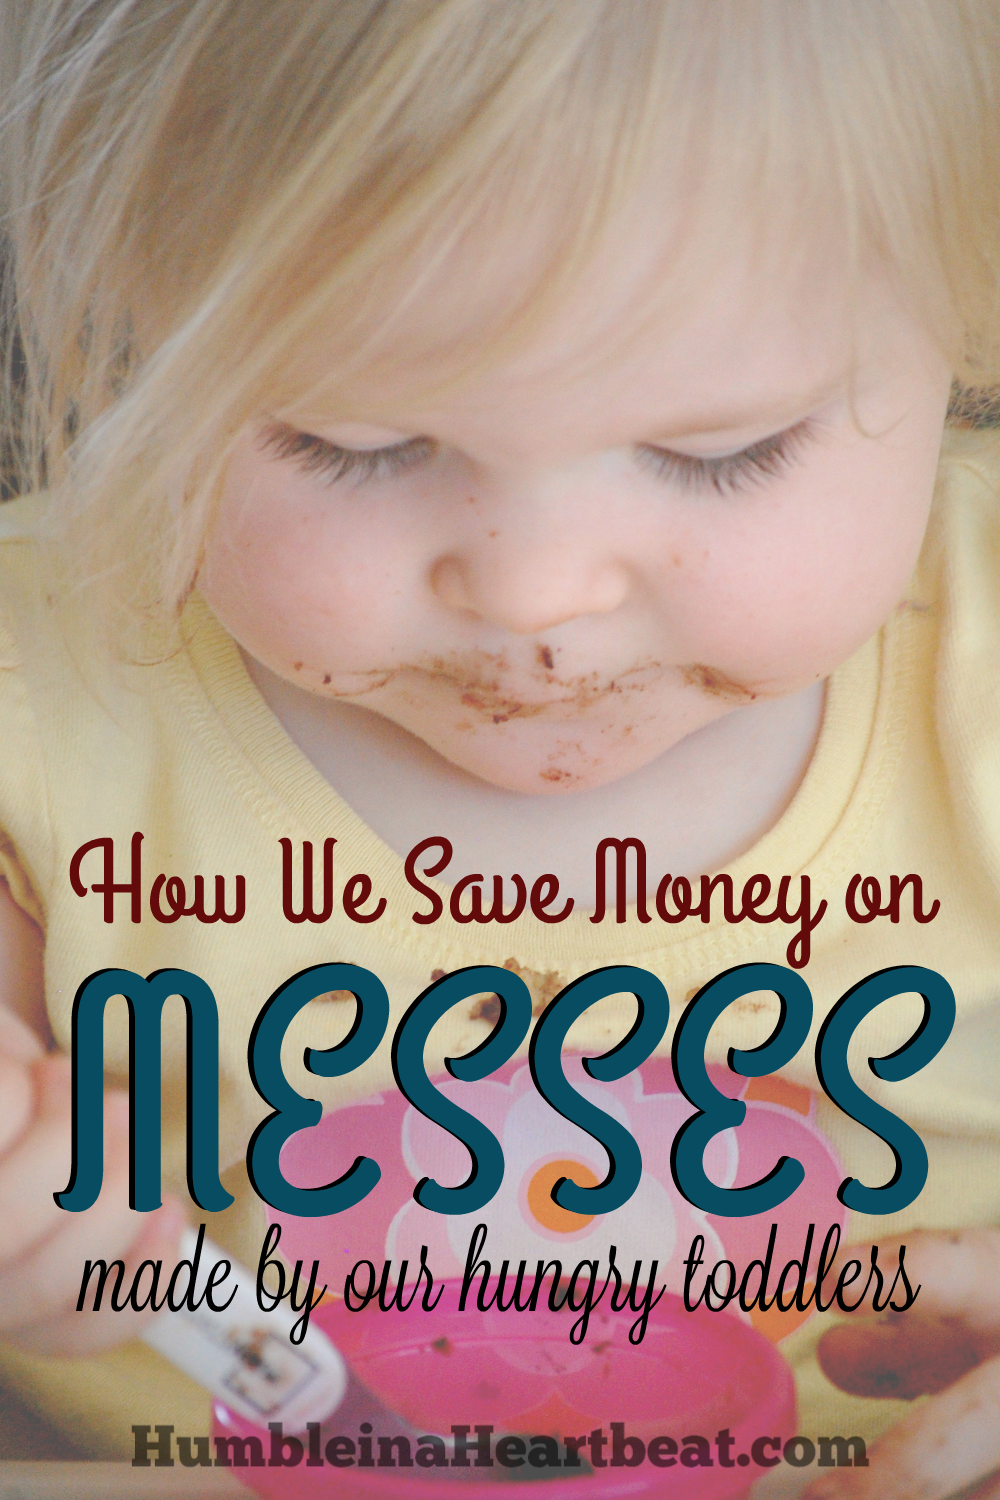 Messes, messes, messes galore! Kids at the dinner table mean plenty of food everywhere except their mouths! Here's how we stopped buying so many paper towels to clean those messes up and saved ourselves $105 each year.